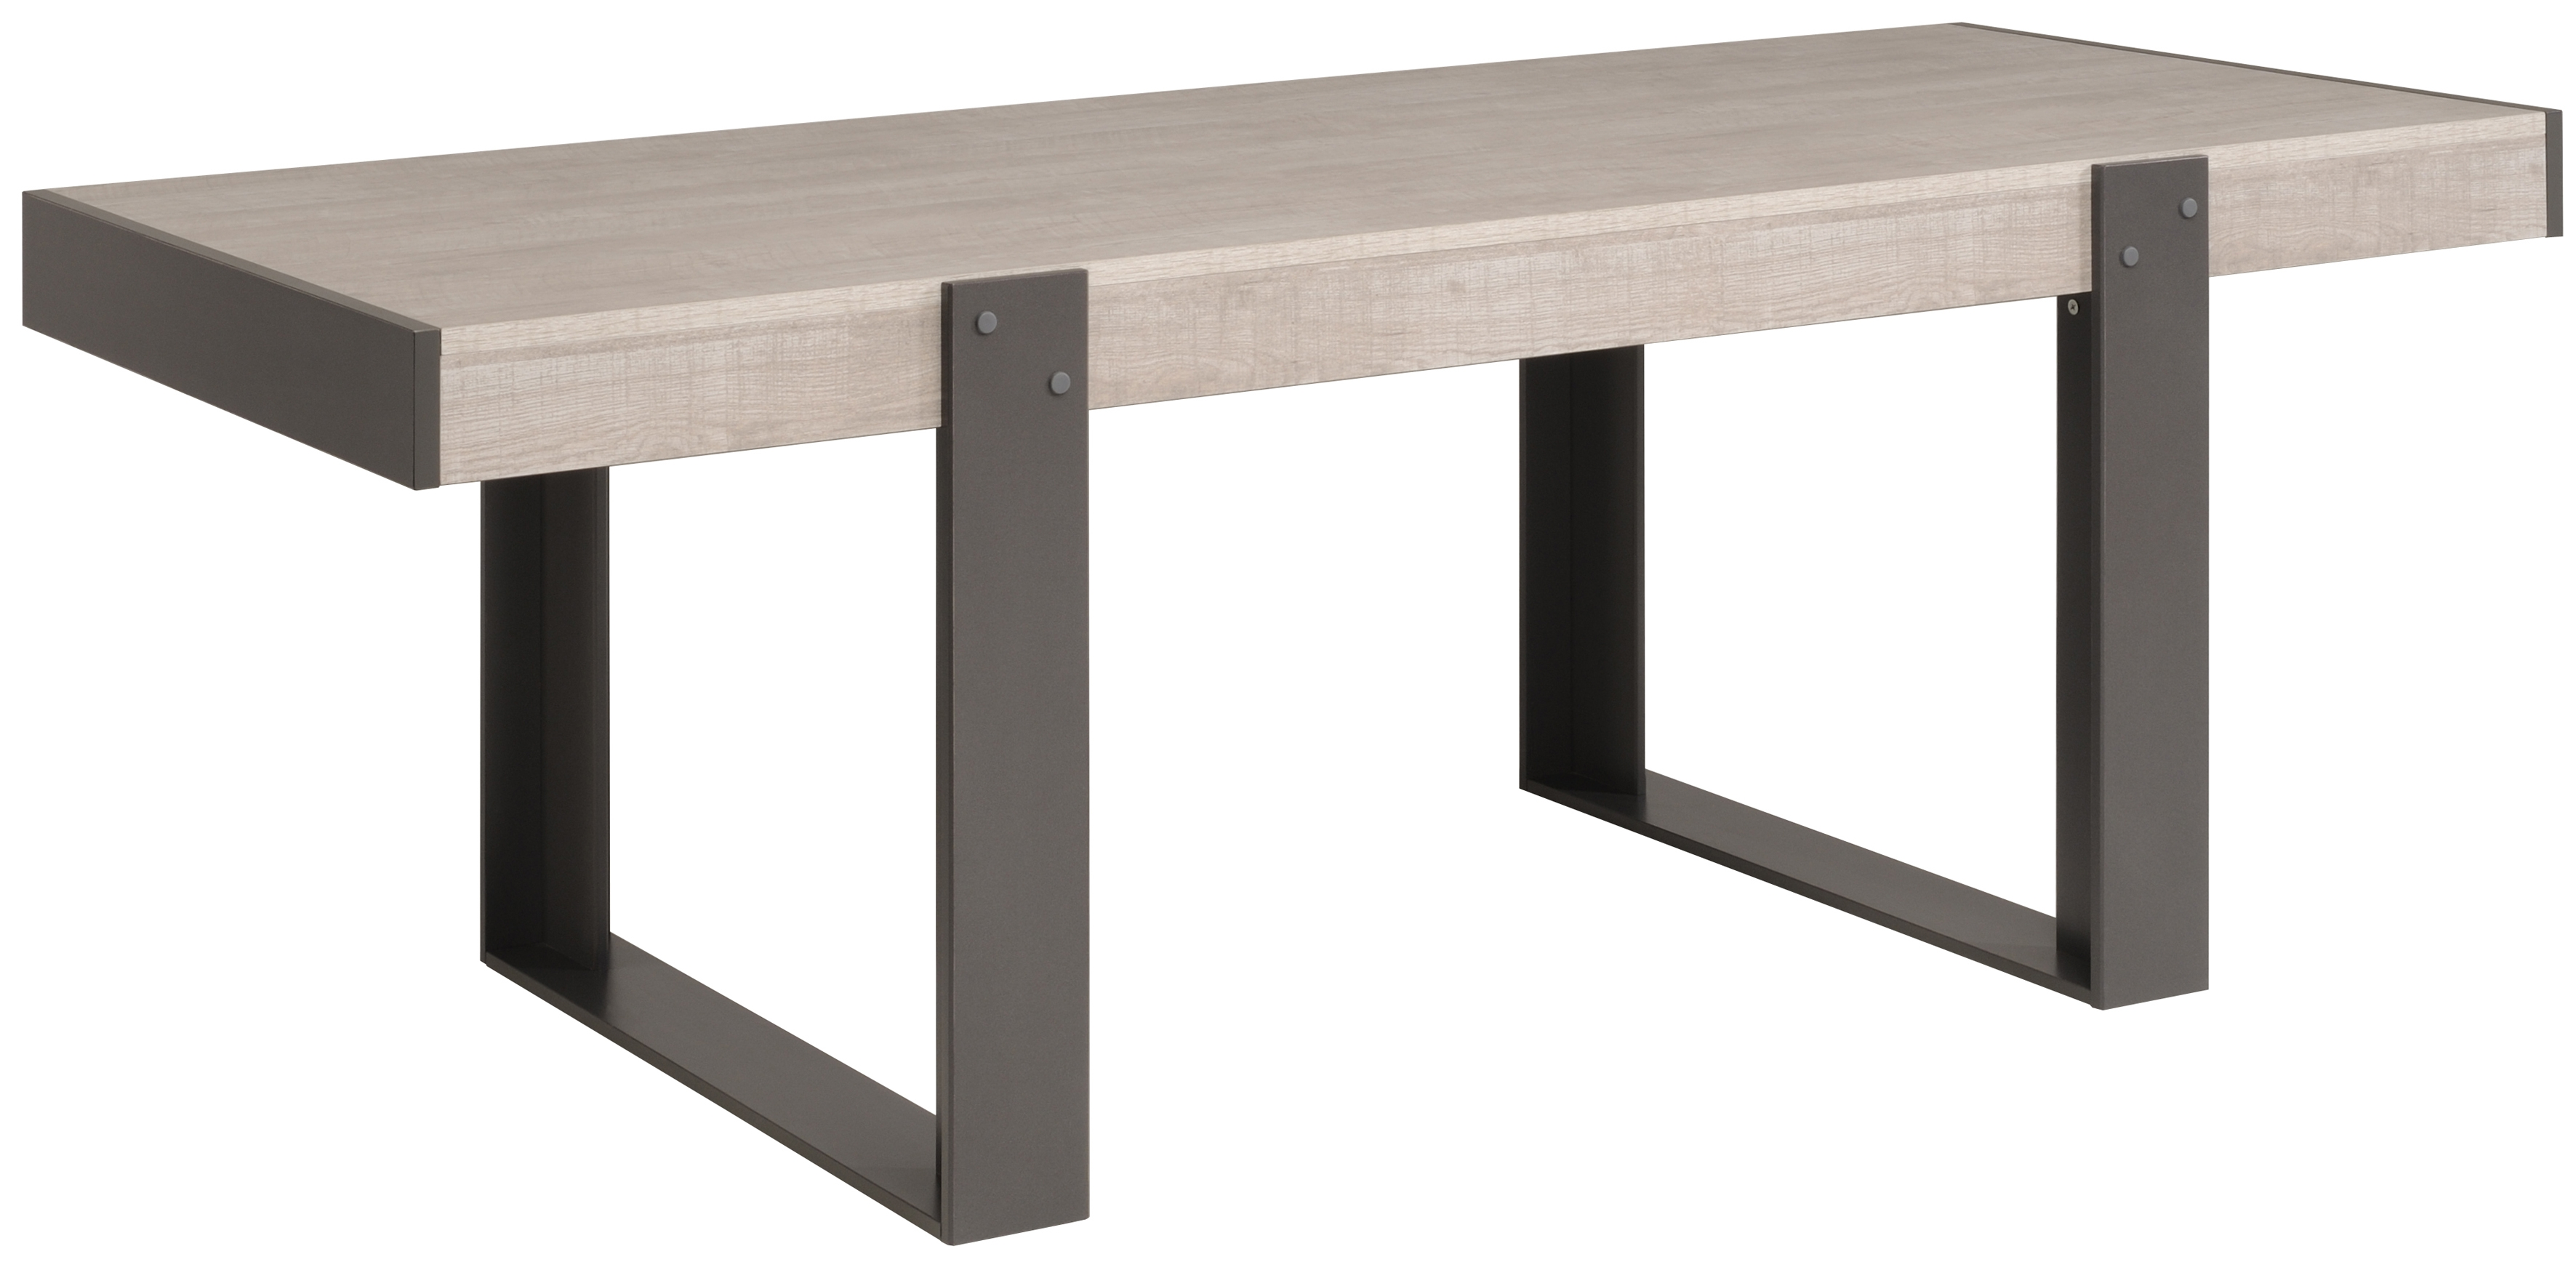 table manger rectangulaire gris loft et gris ombre harvey. Black Bedroom Furniture Sets. Home Design Ideas